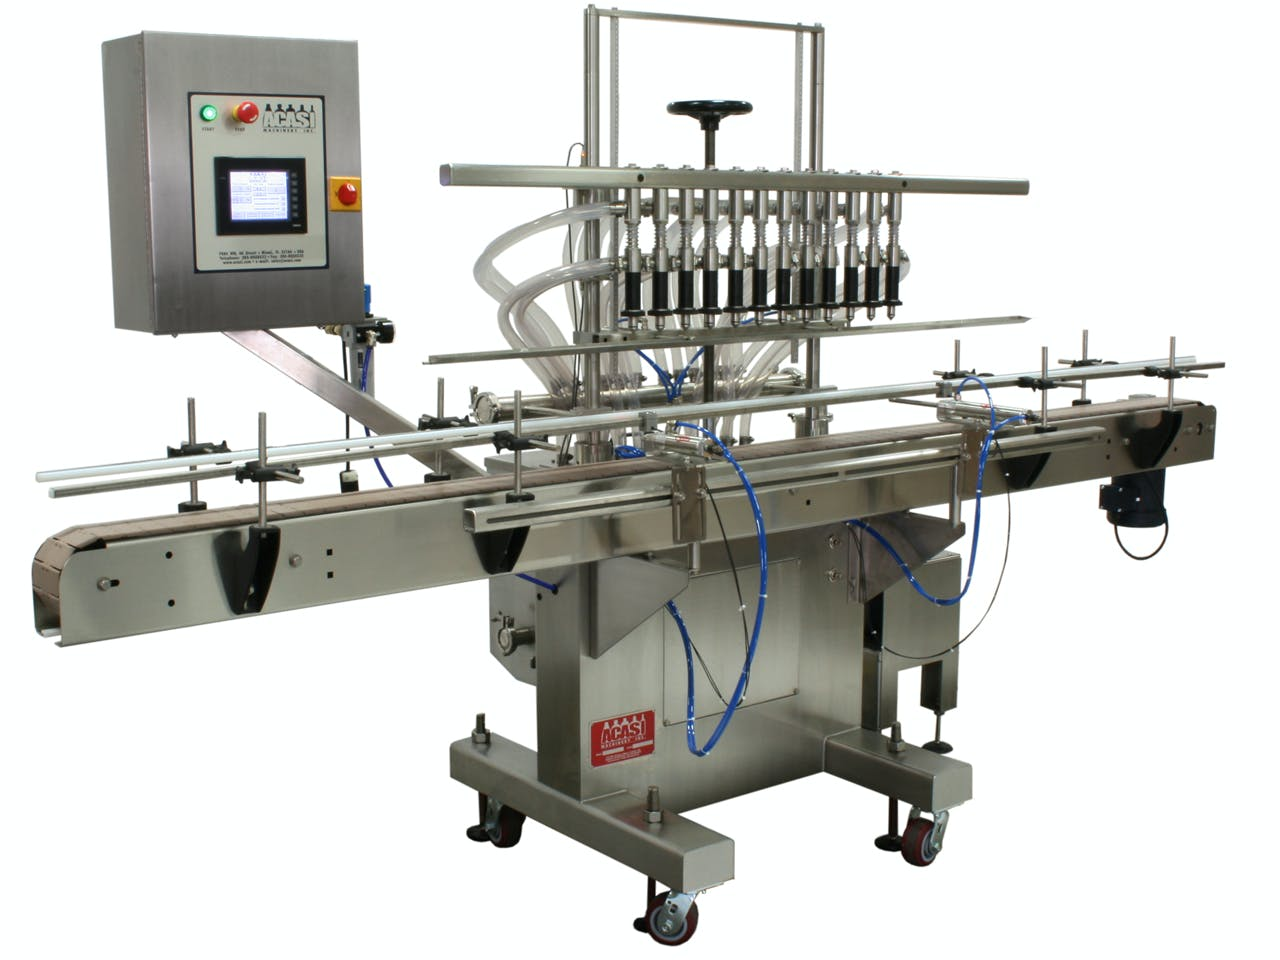 Inline Pressure Overflow Filler - Model GI3300 Bottle filler sold by ACASI Machinery